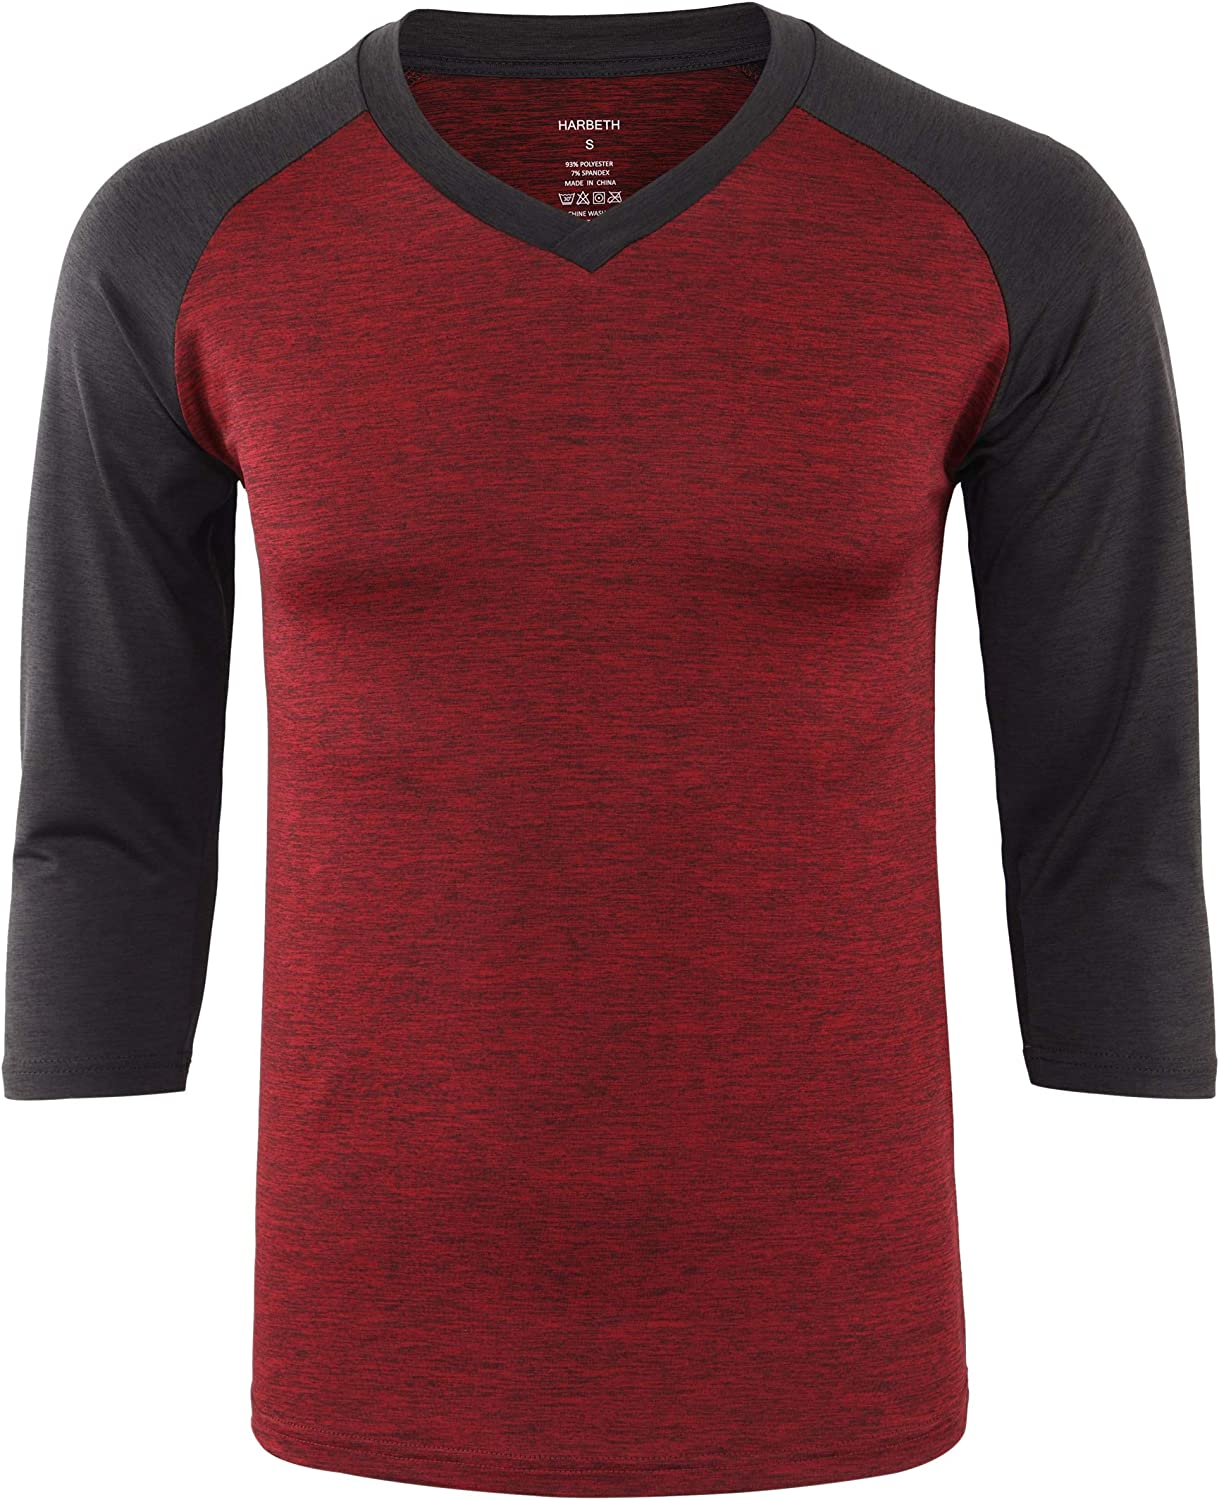 HARBETH Men's Quick Dry Tagless Outdoor Hiking At 3 Sleeve 35% OFF Gym Discount is also underway 4